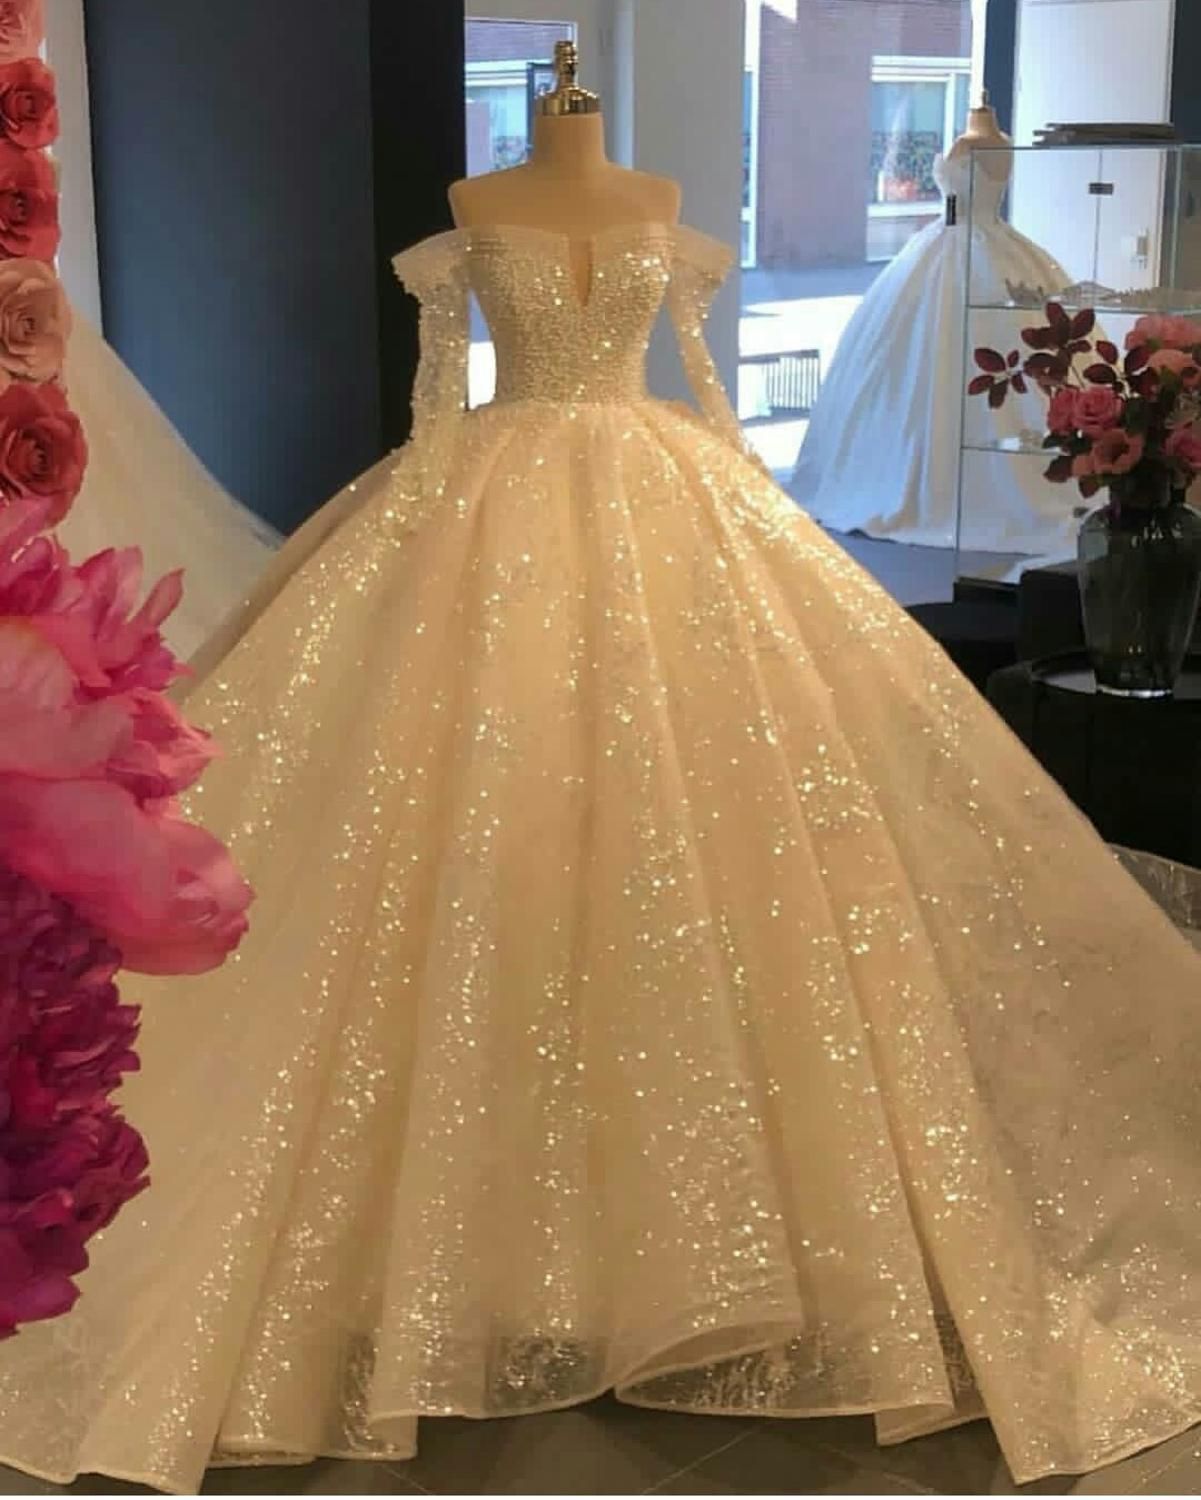 2020 Luxury Sparkly Wedding Dresses Off Shoulder Long Sleeve Princess Ball Gown Bridal Gowns Bling Bling Puffy Robes De Mariee Wedding Dresses Aliexpress